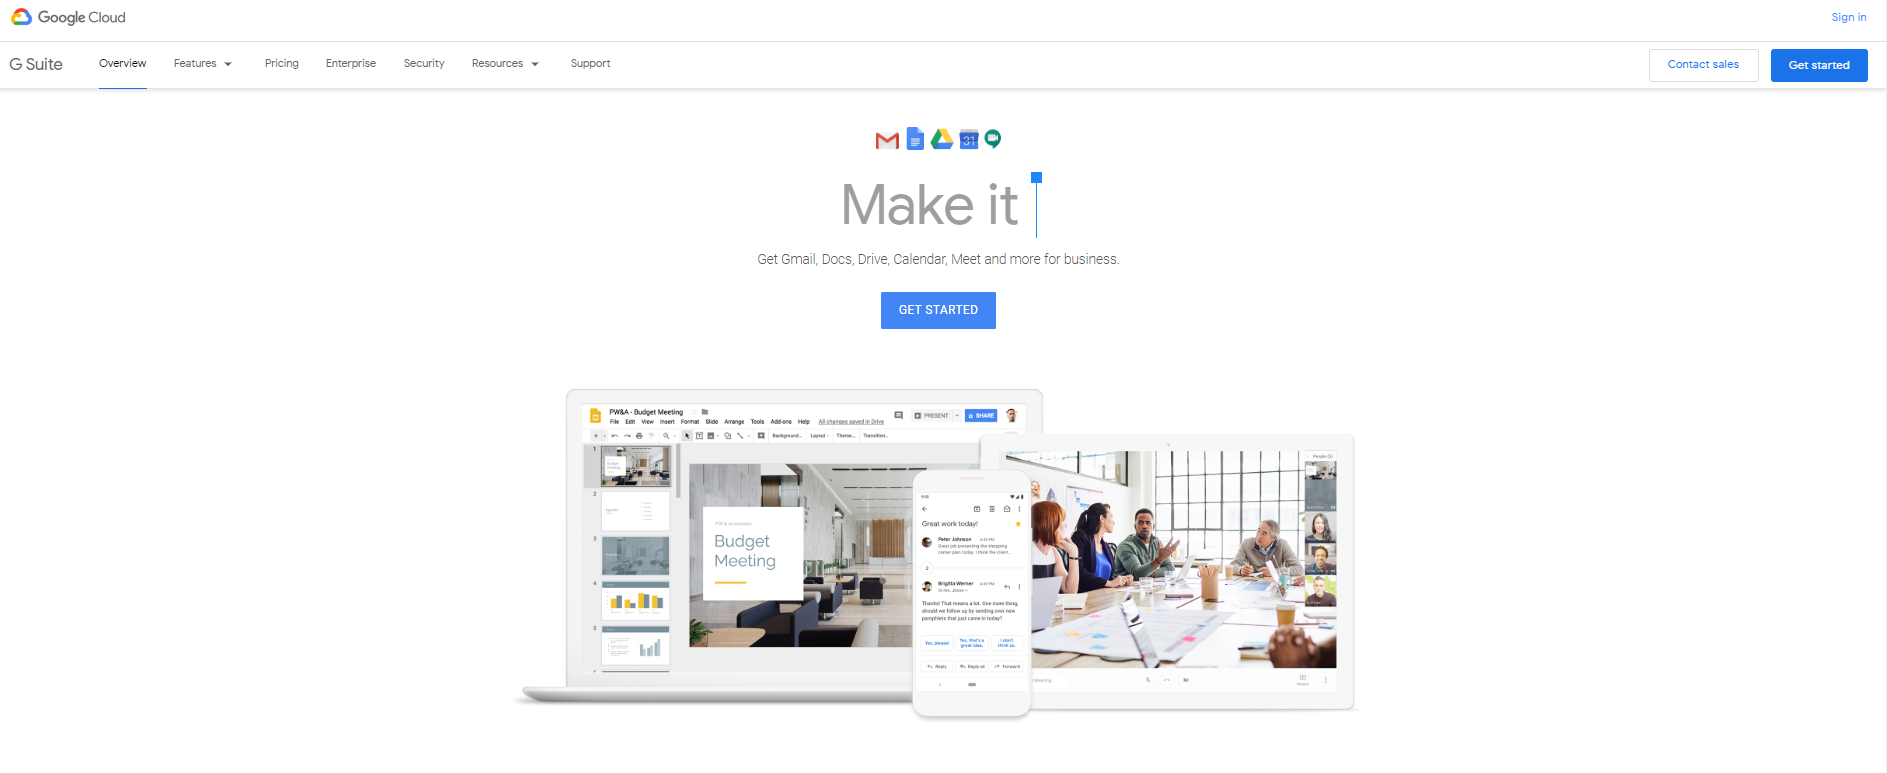 g suite home